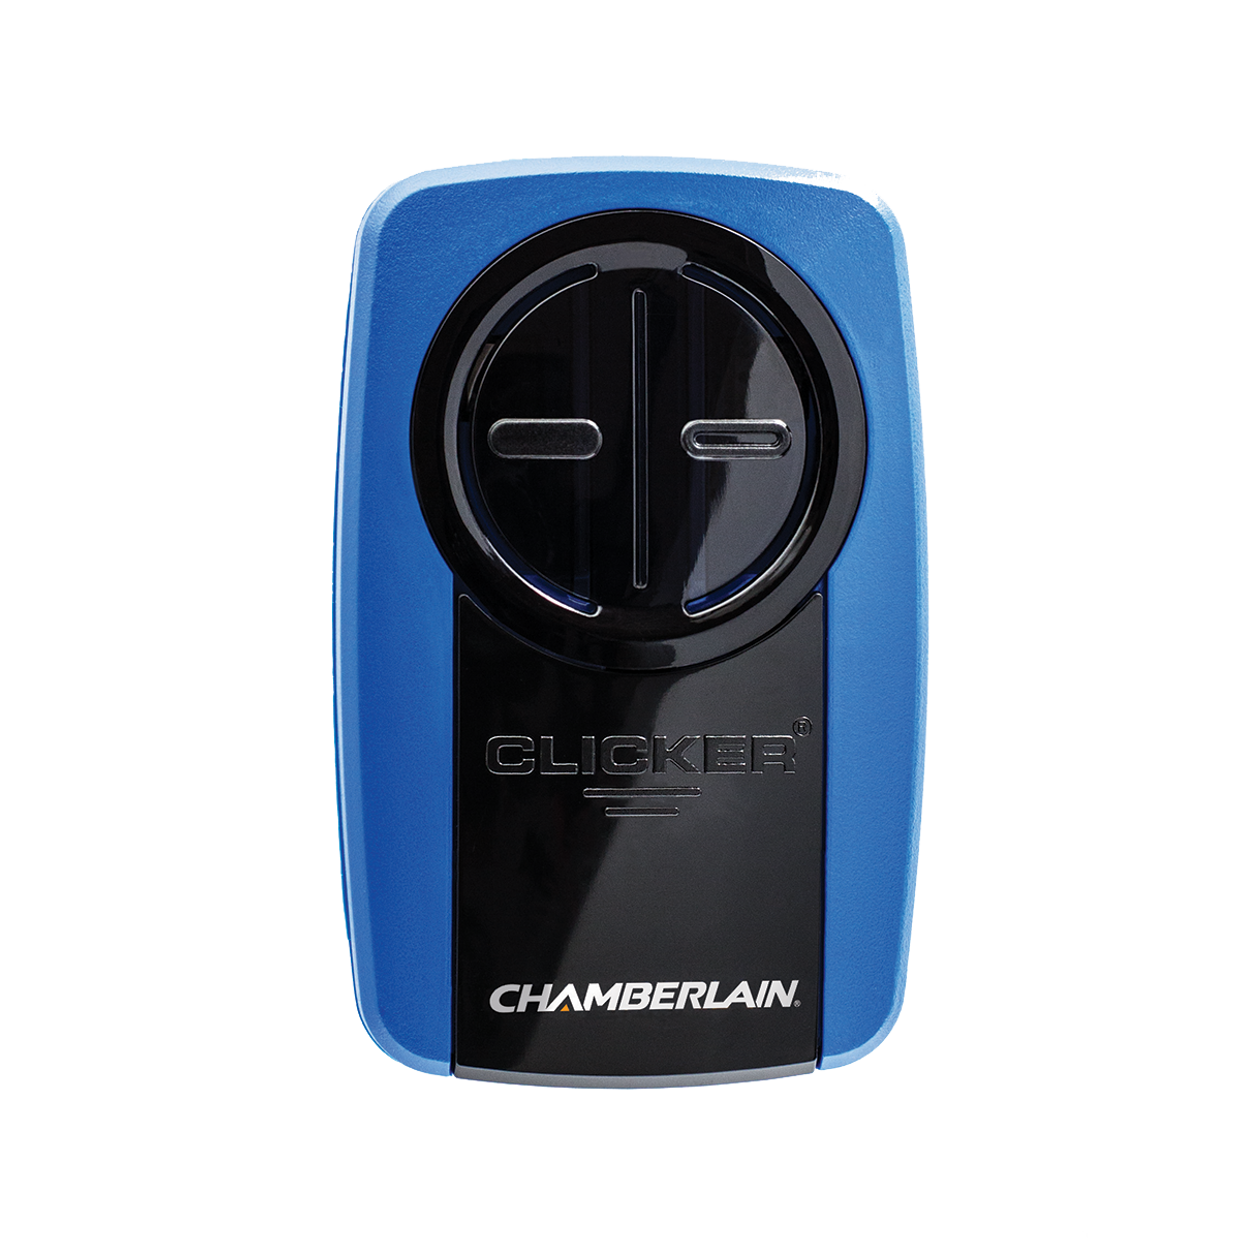 KLIK3U-BL2 KLIK3C-BL2 Clicker Blue Universal Garage Door Remote HERO